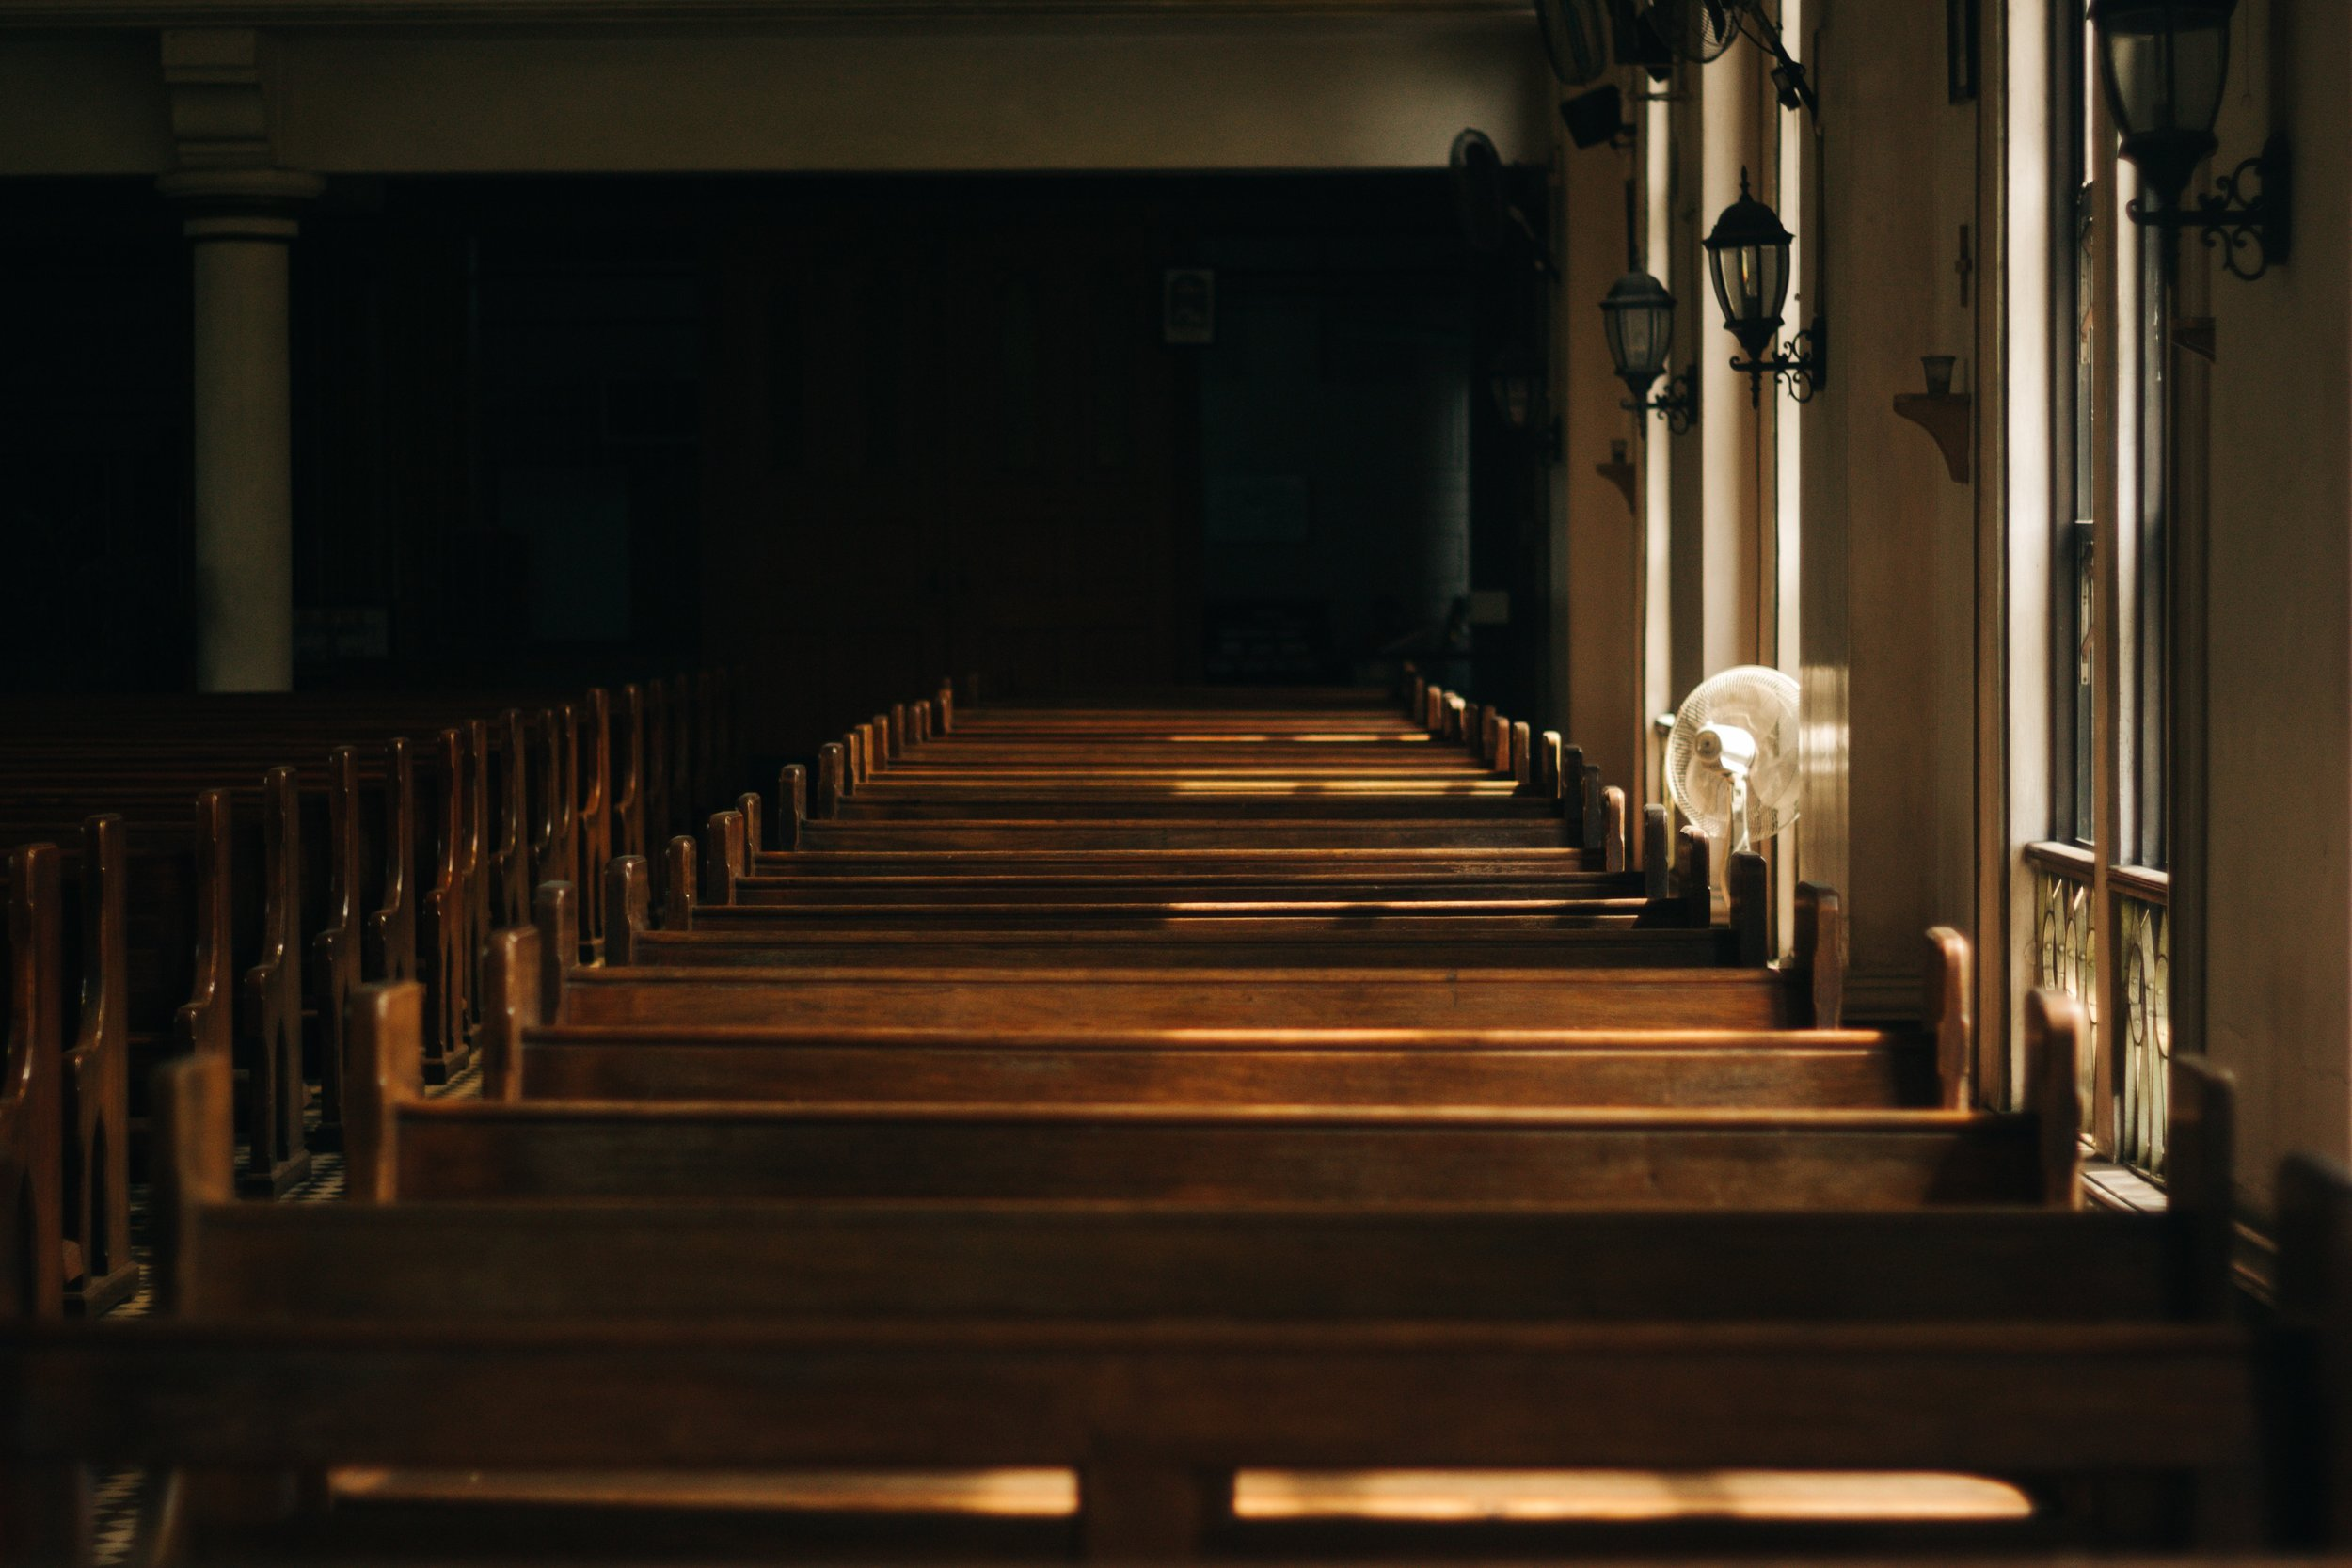 architecture-benches-chapel-133699.jpg